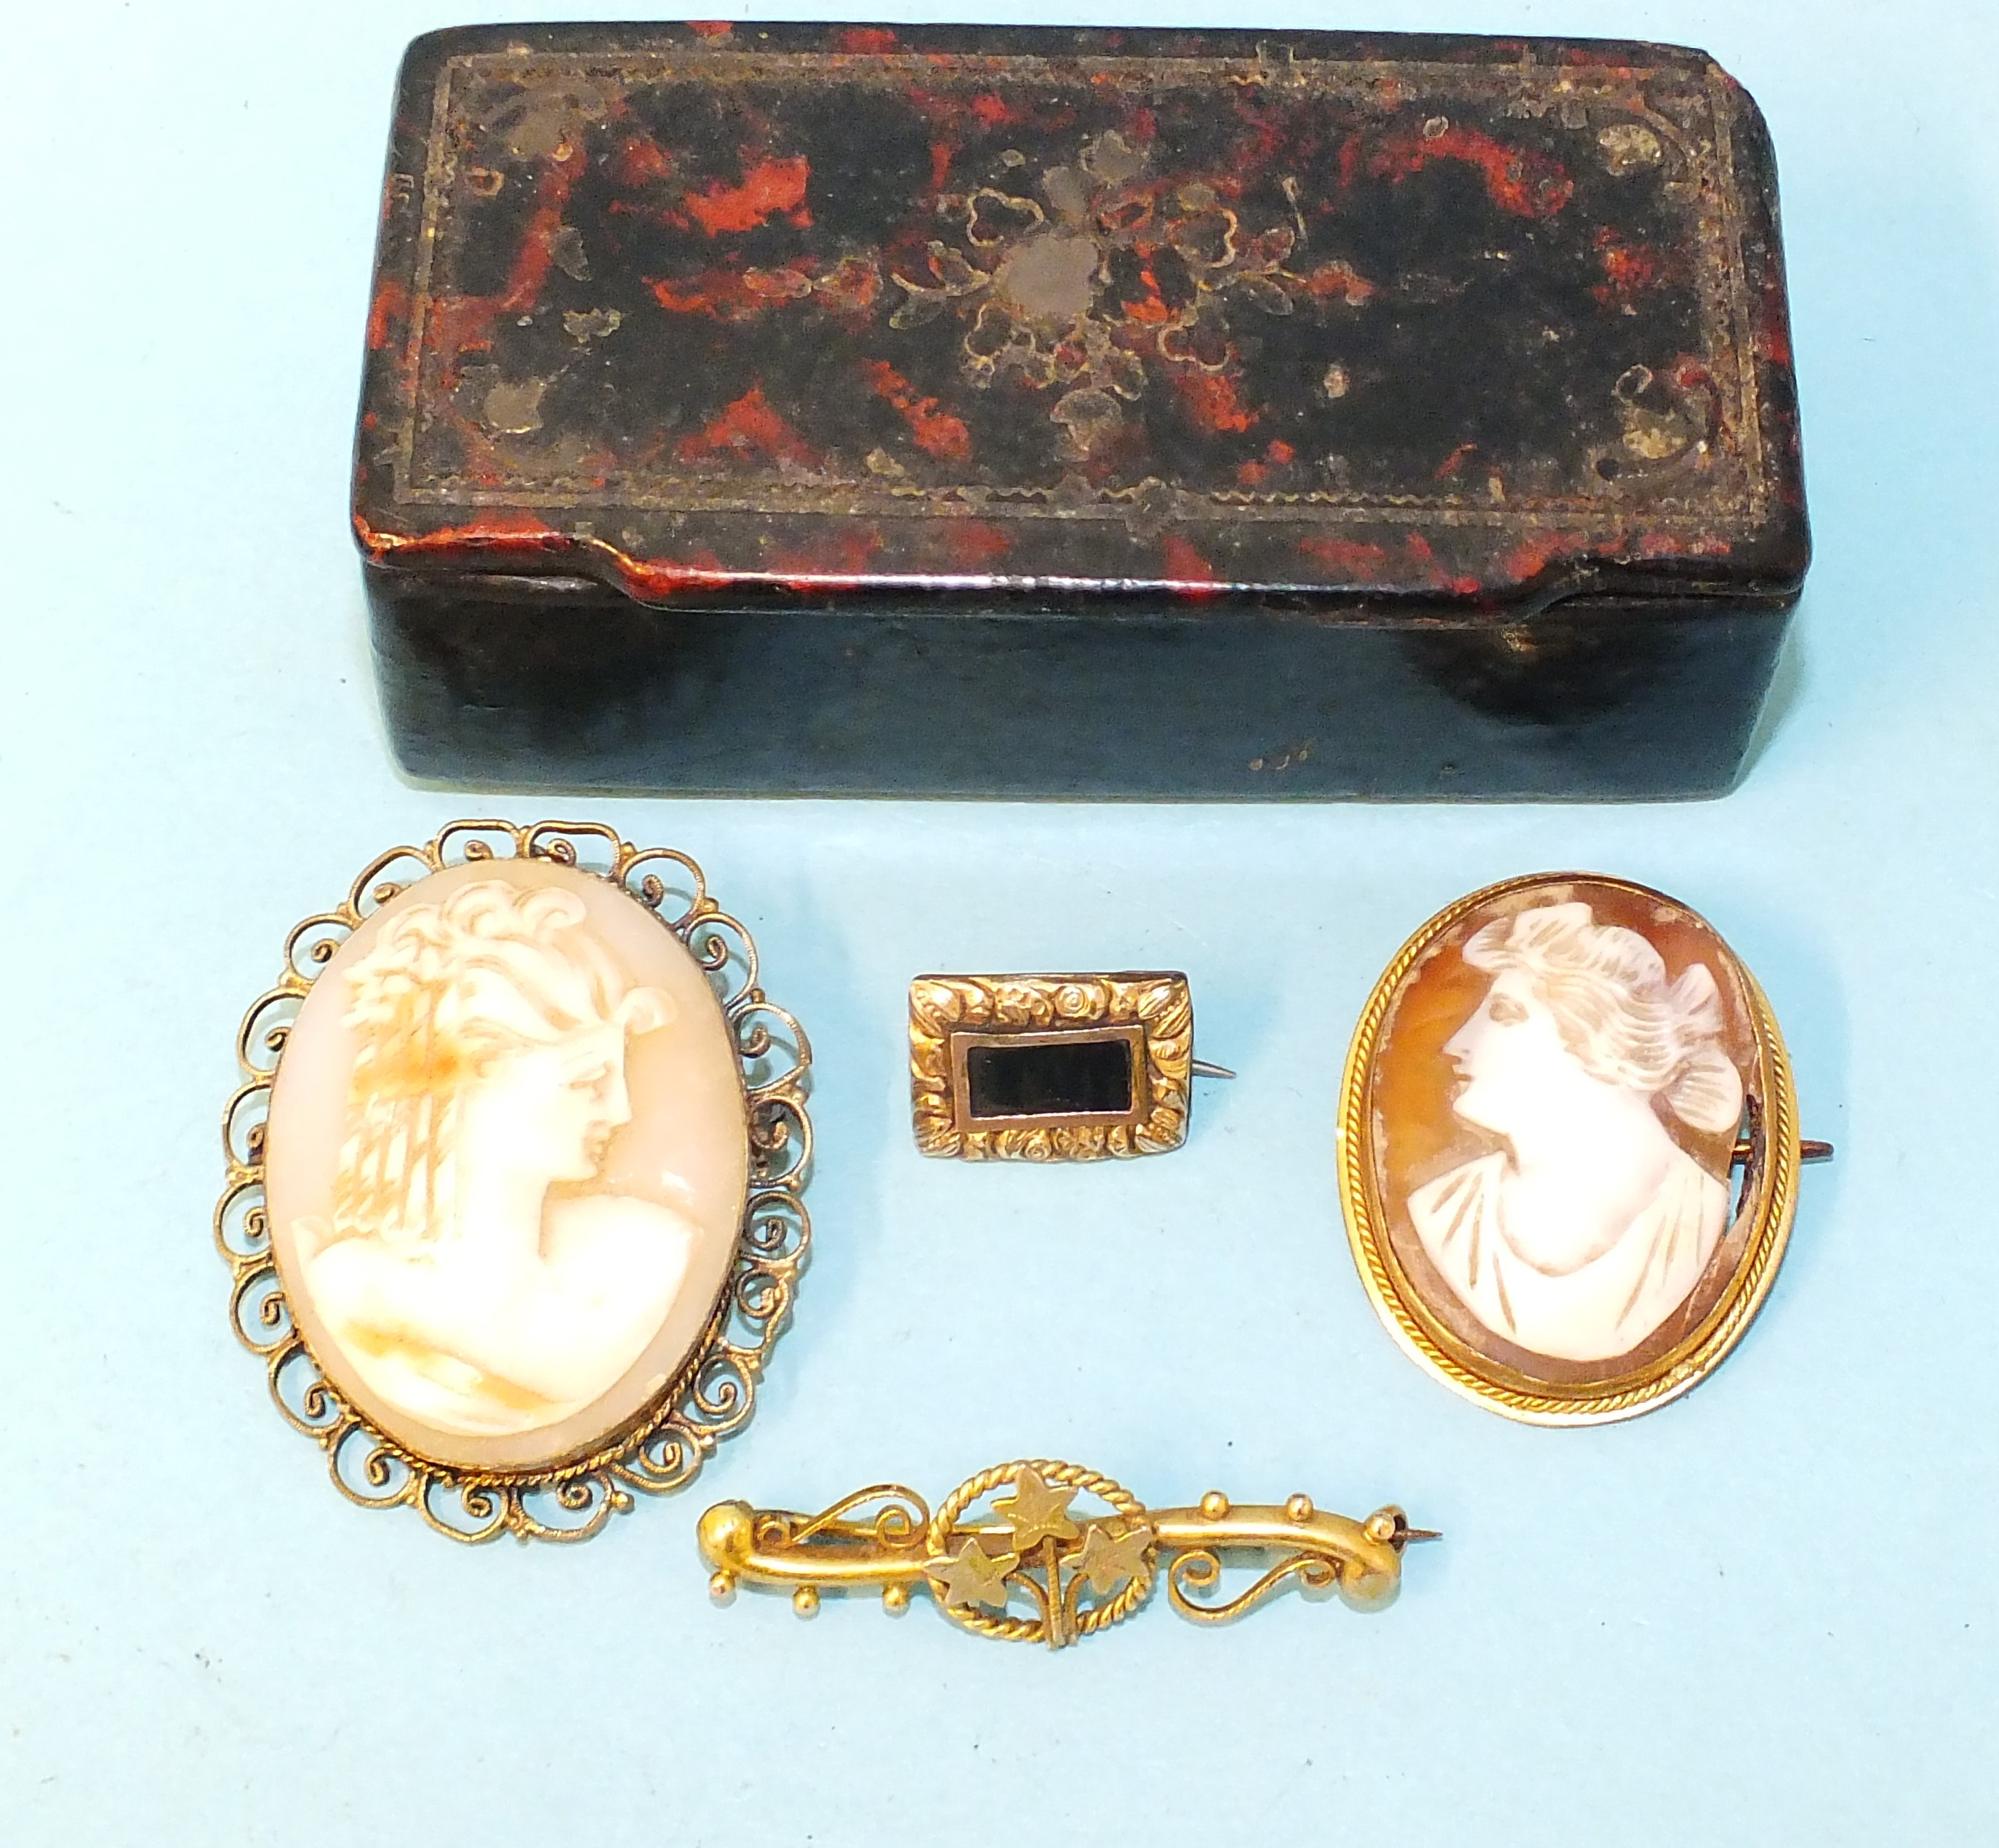 A small 19th century mourning brooch, a 9ct gold bar brooch with ivy leaf decoration and two shell